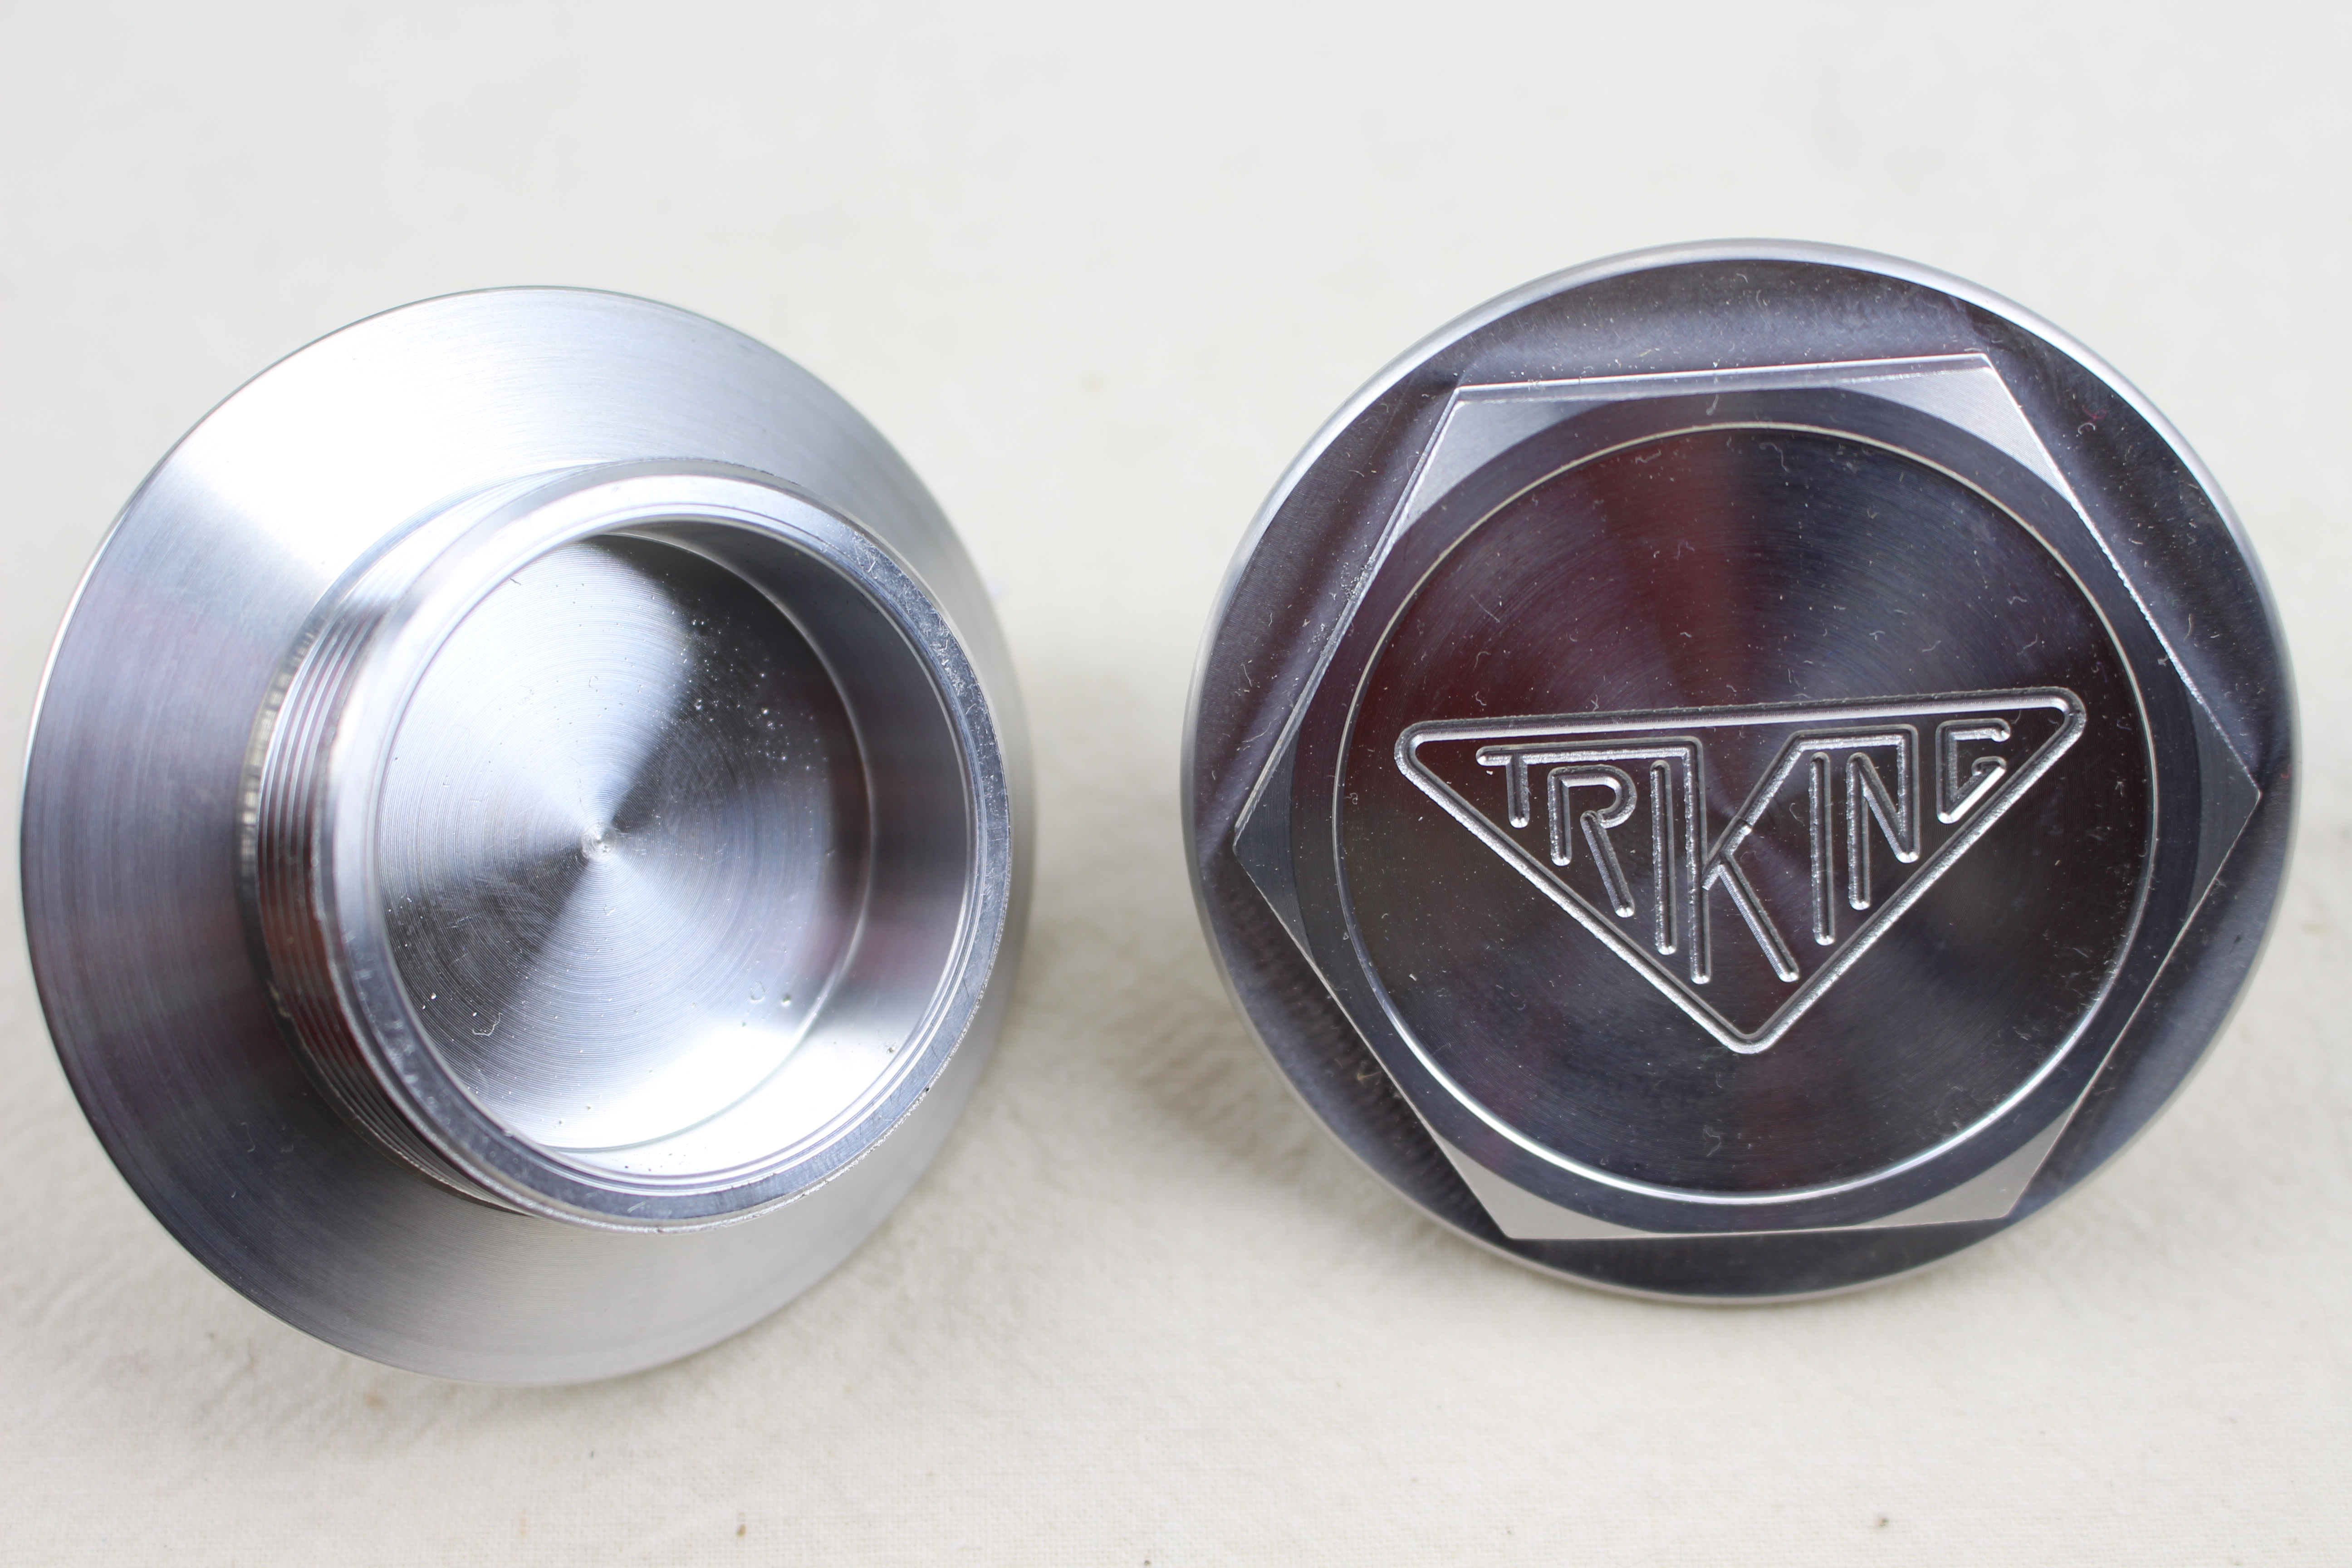 Billet alloy hub cap, machined with Triking logo suits all front wheels with threaded hubs, also available in brass, can be highly polished,